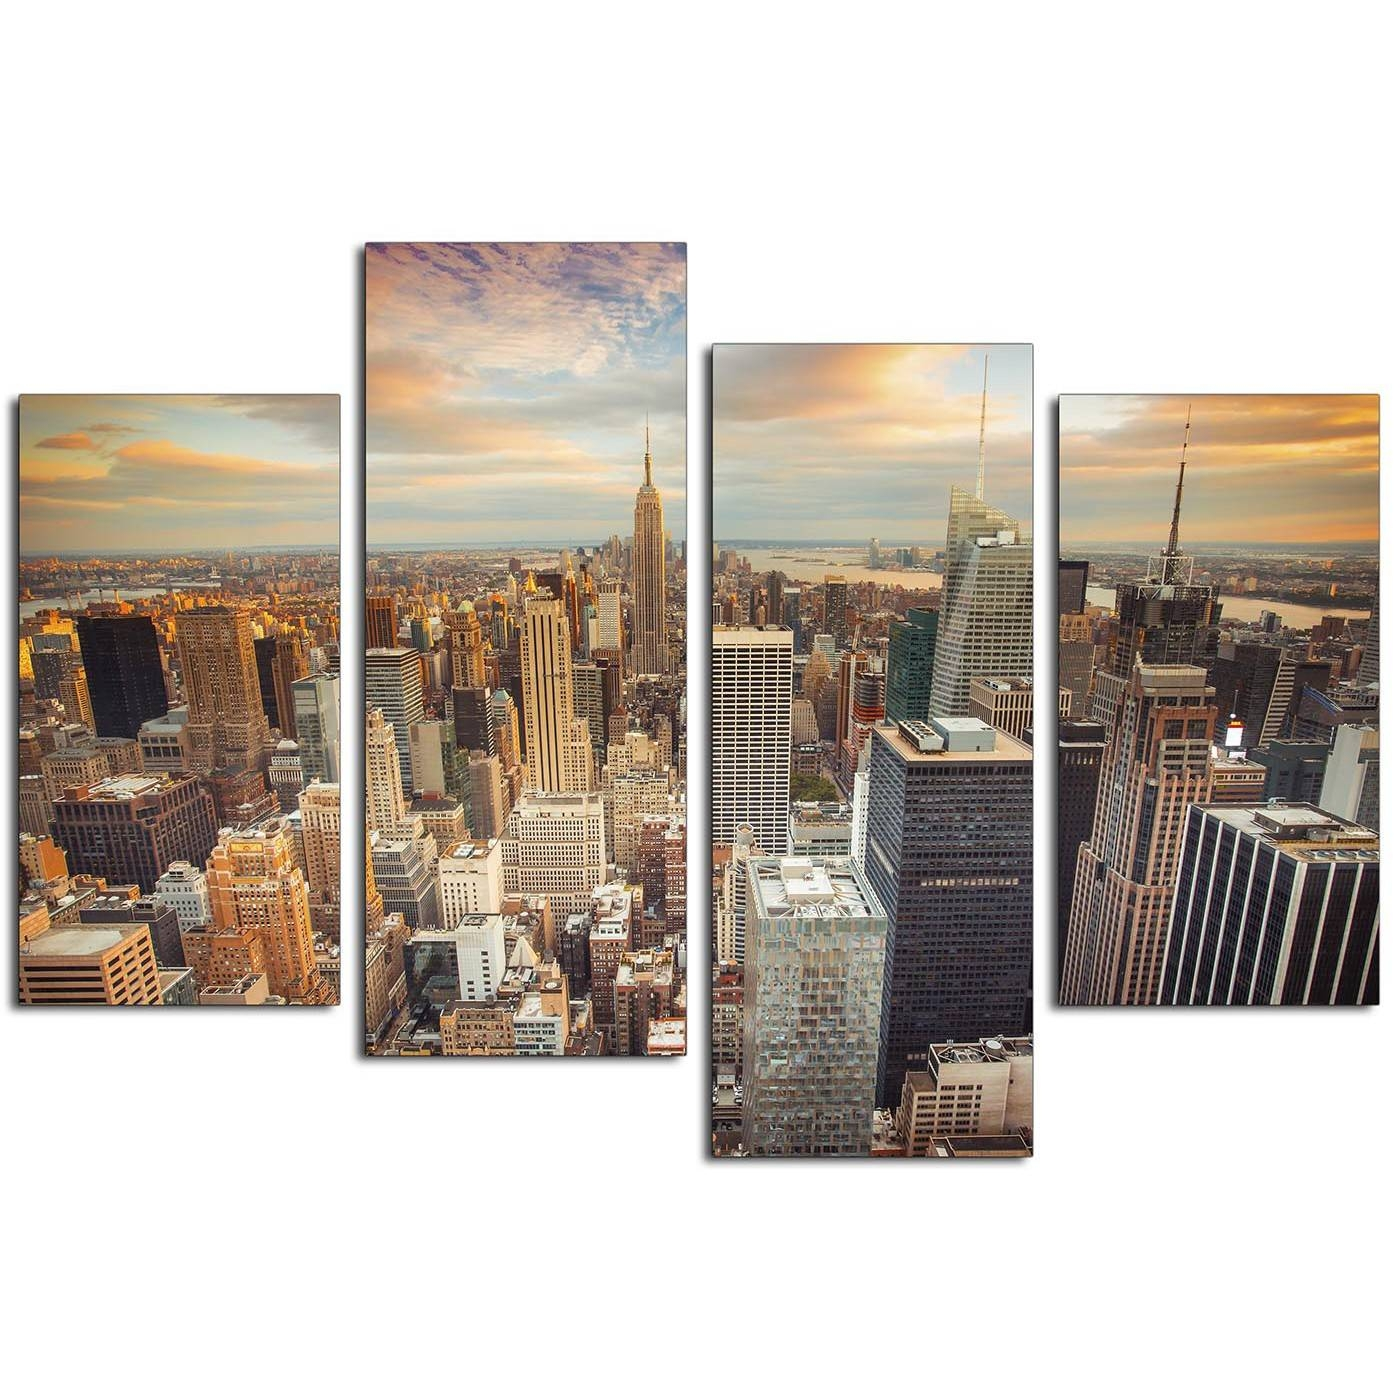 Canvas Prints Of The New York Skyline For Your Living Room – 4 Panel Pertaining To Most Popular New York City Canvas Wall Art (View 5 of 20)